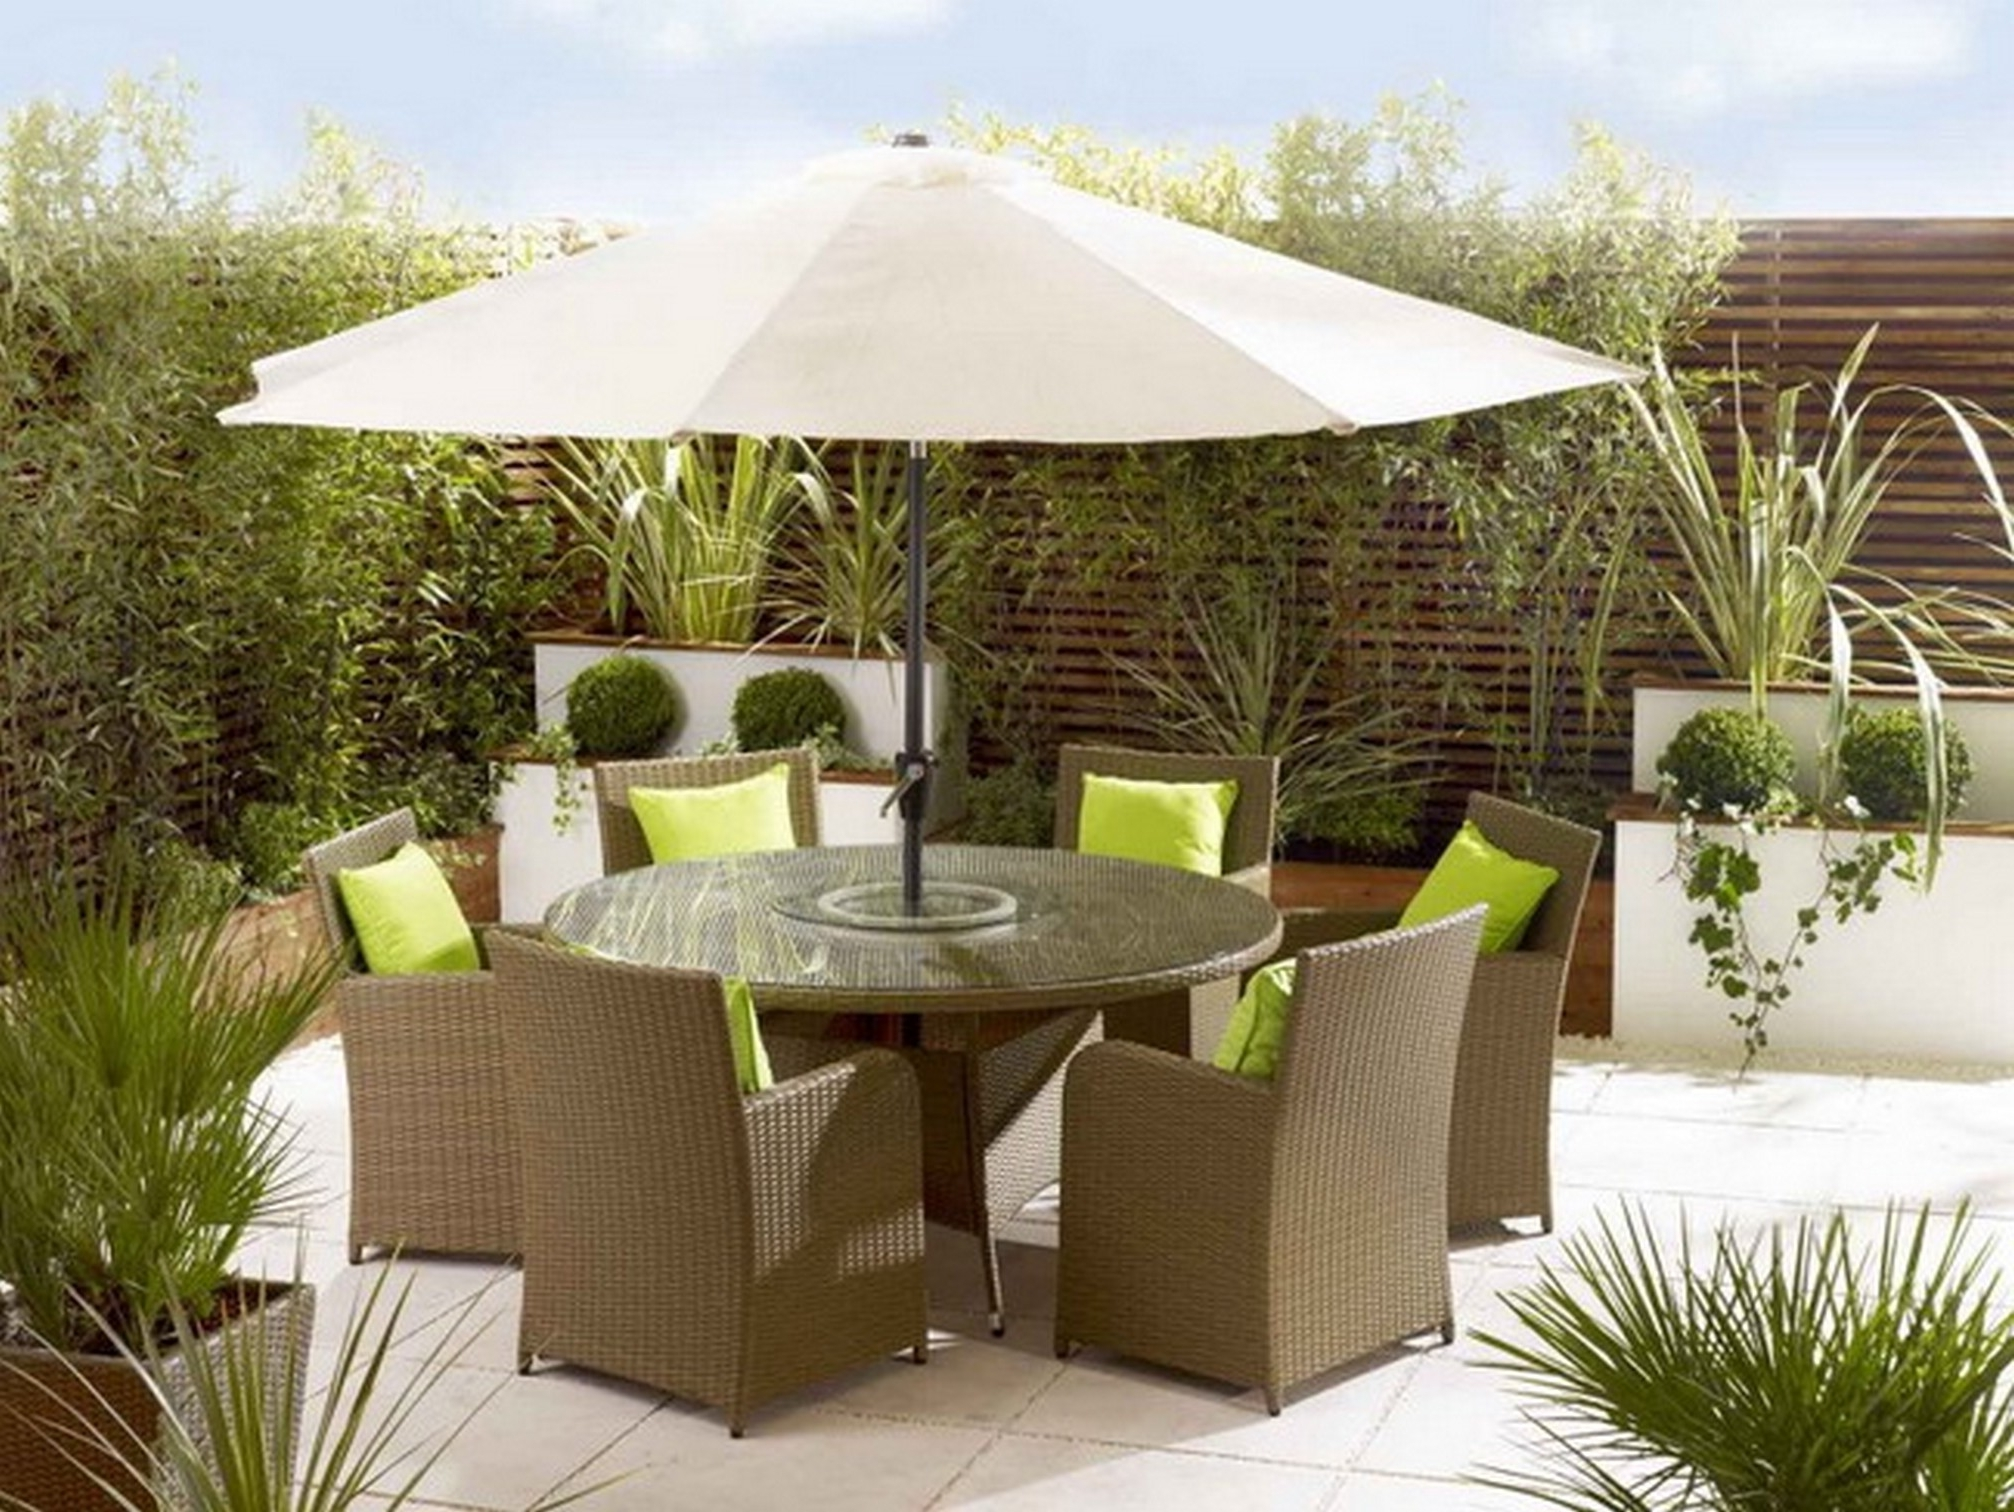 Patio Furniture With Umbrellas Within Favorite Patio Umbrella Table Attachment — Mistikcamping Home Design : The (Gallery 6 of 20)